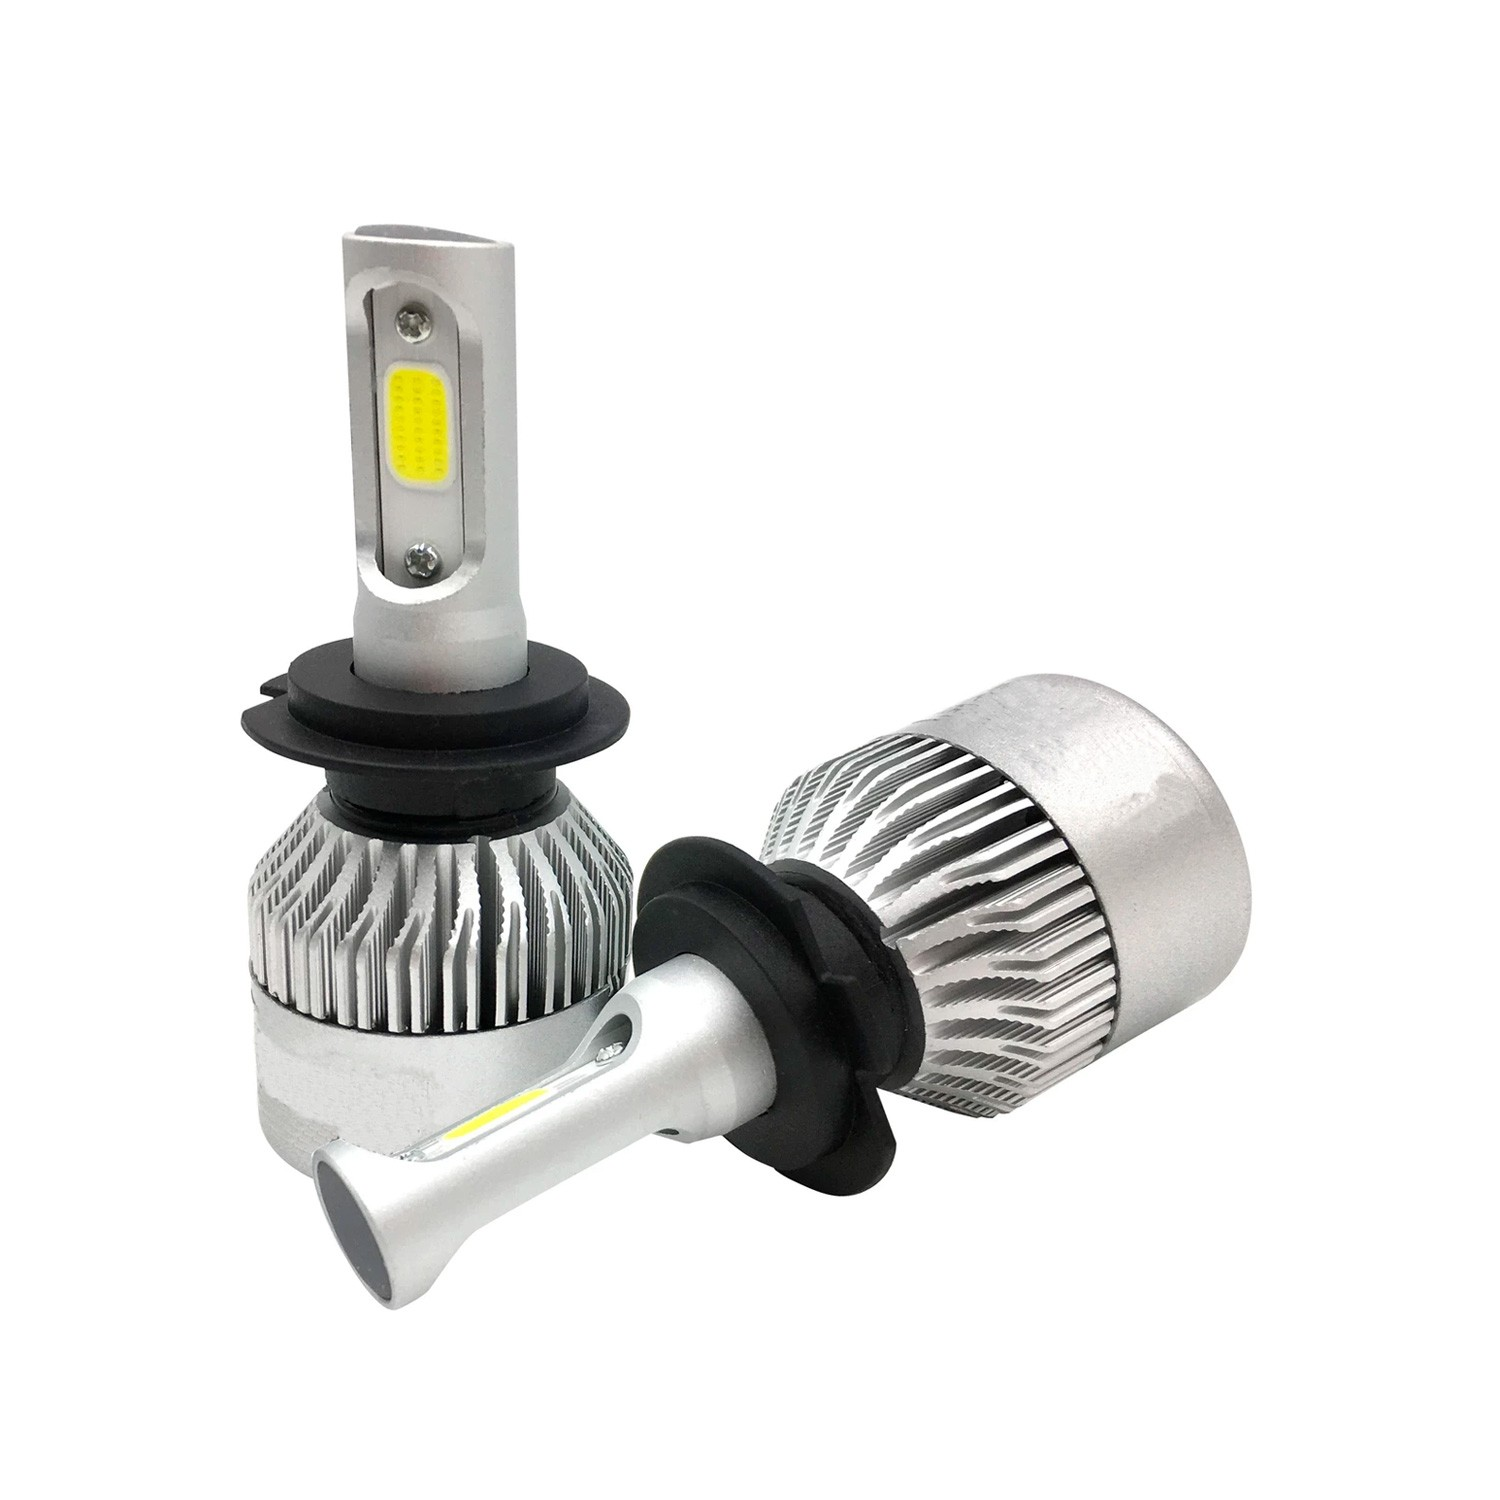 Bombillas Led H7 Canbus.Can Bus Adaptor Kit For H7 Led Bulbs For Cars Or Motorcycles Ledkia